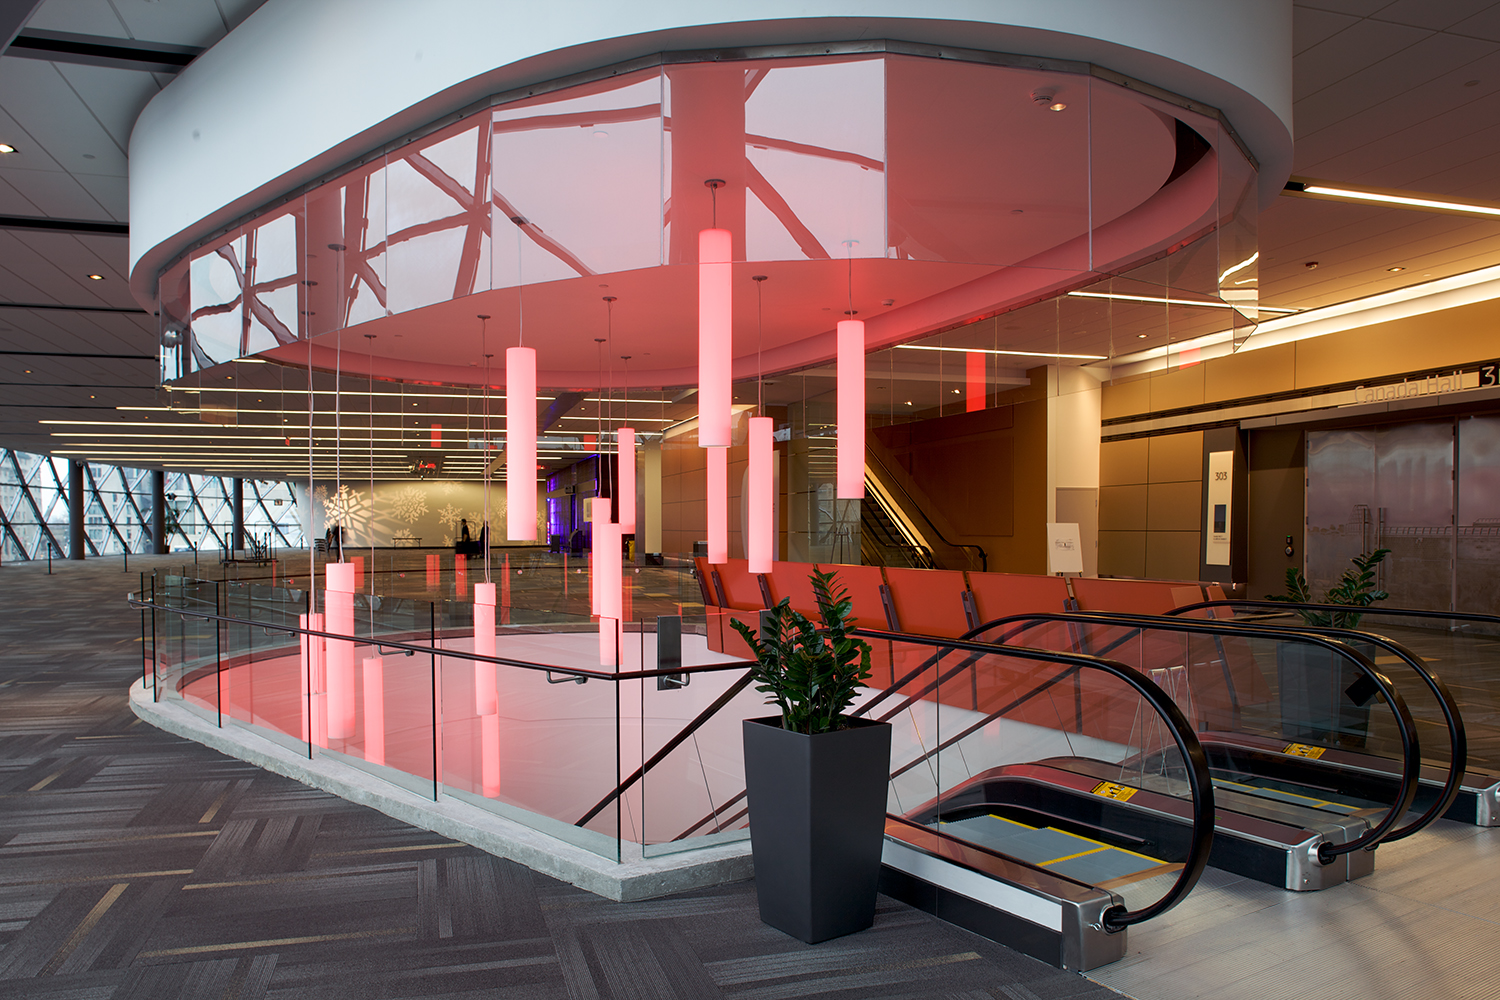 Sequence modern lighting fixtures emit pink light above an escalator in a large, modern convention center.